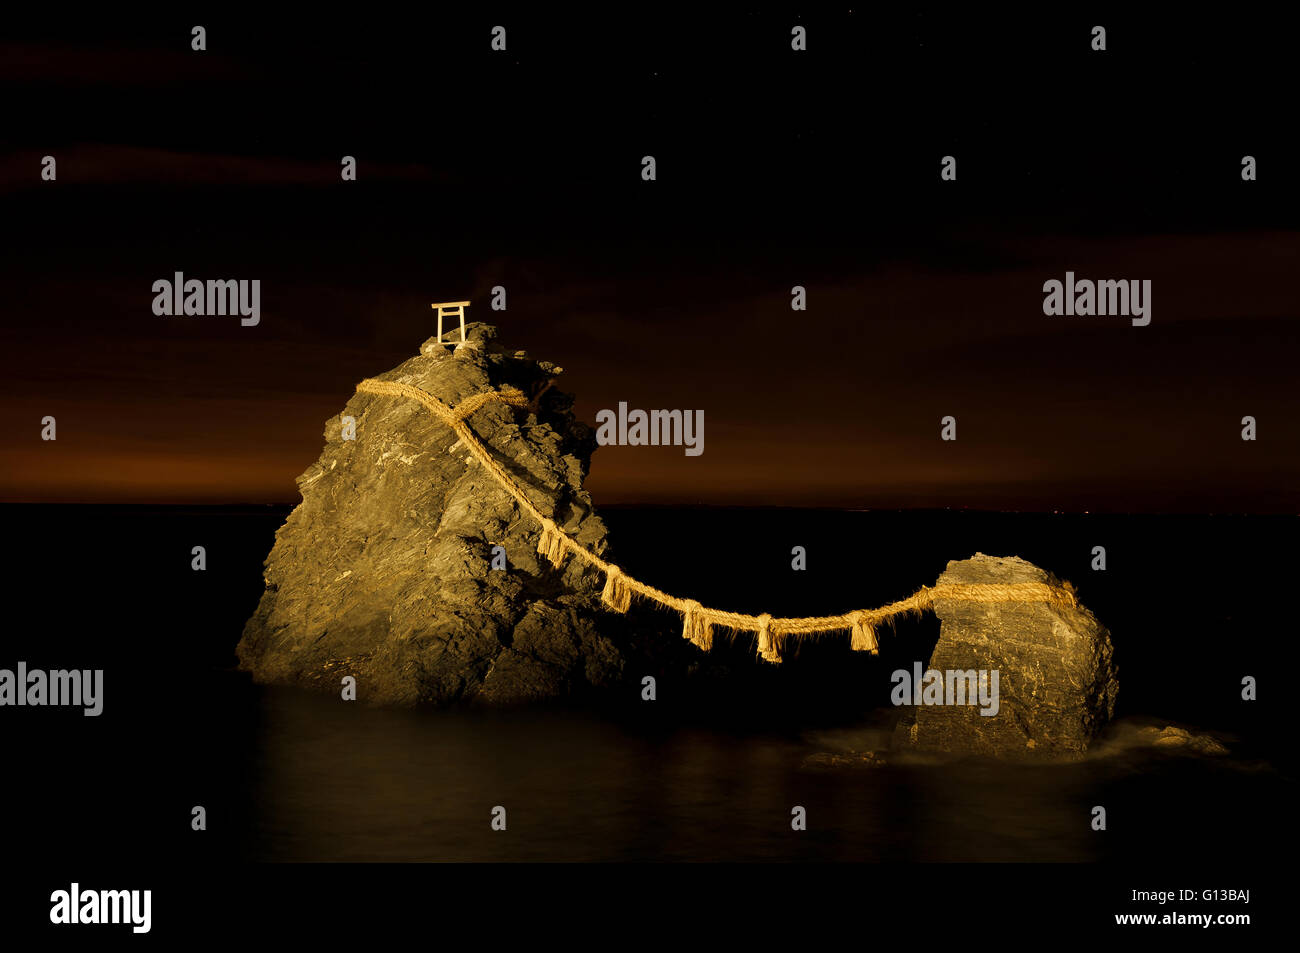 Meoto Iwa or the Loved one-and-loved one Rocks, are a couple of small rocky stacks in the sea off Futami, Mie, Japan - Stock Image